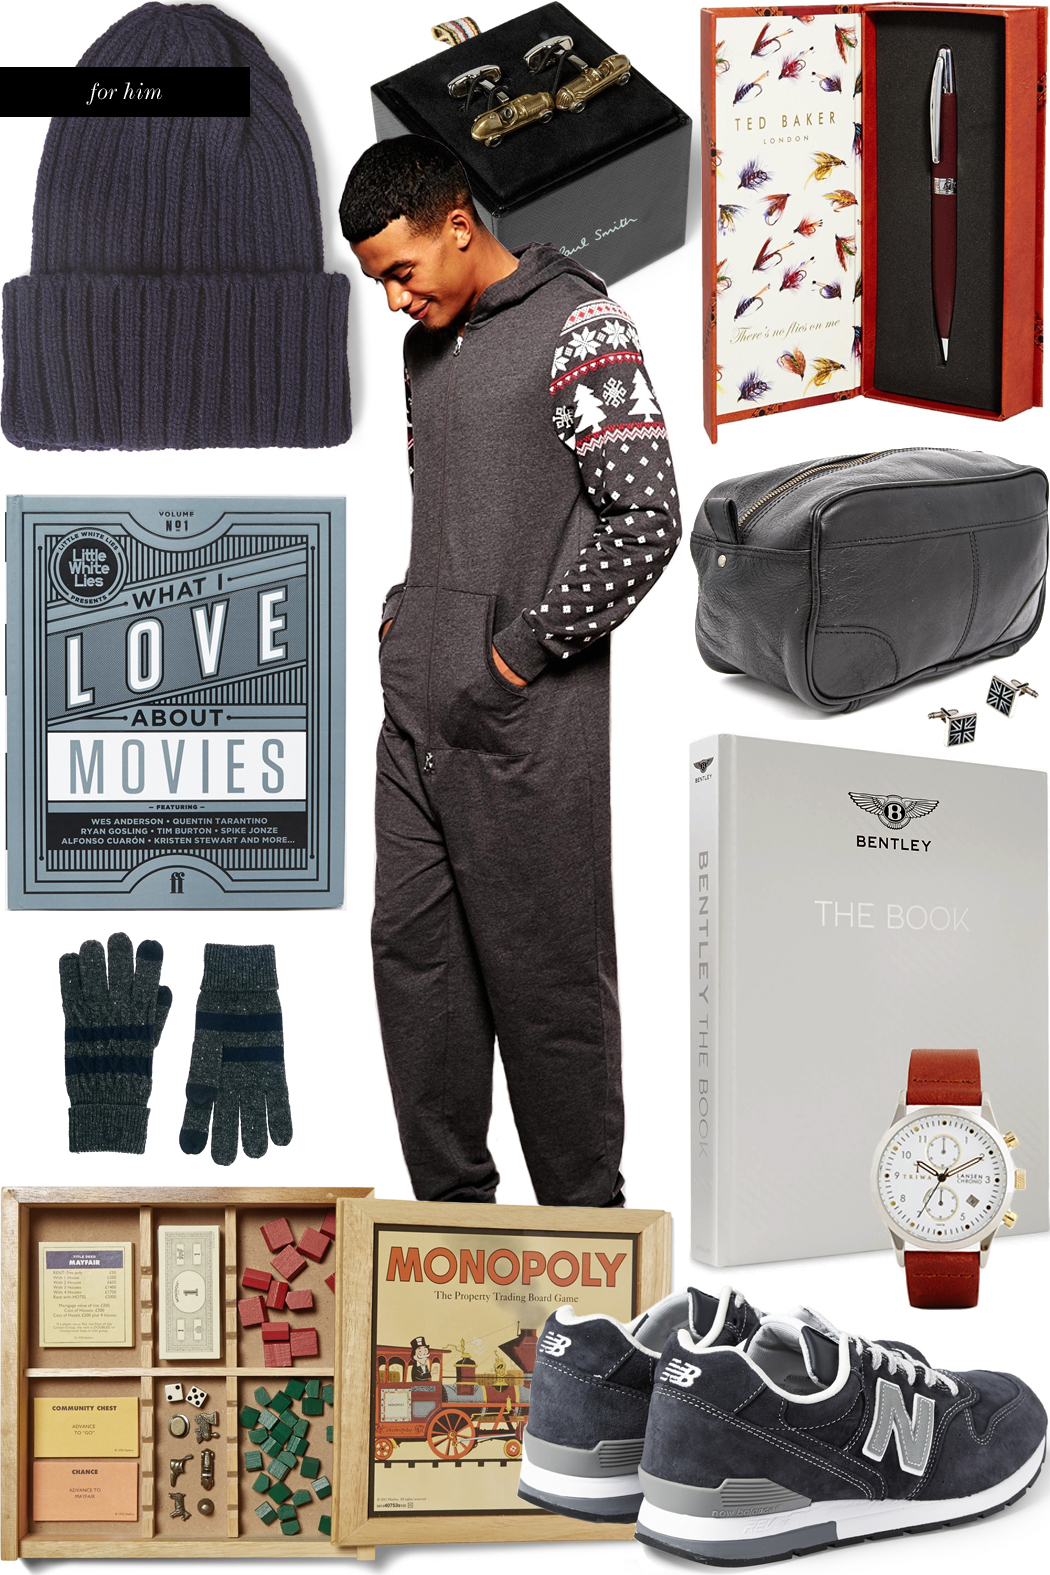 Gift ideas for him fash-n-chips.com